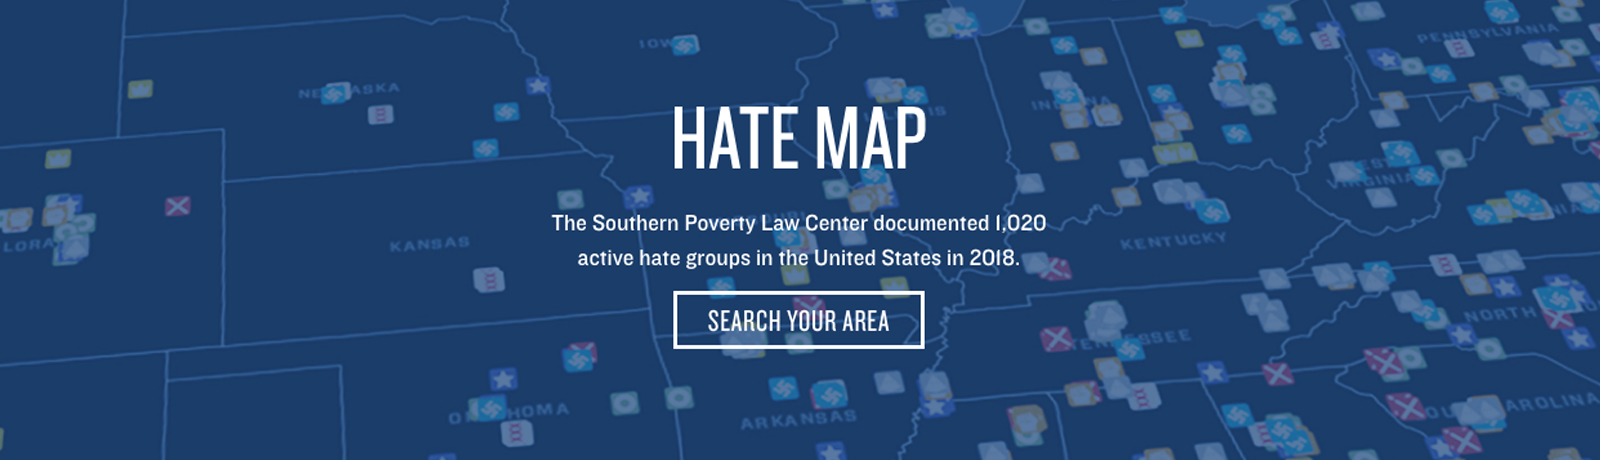 The Southern Poverty Law Center creates a sense of urgency with its CTA body copy and button prompt wording